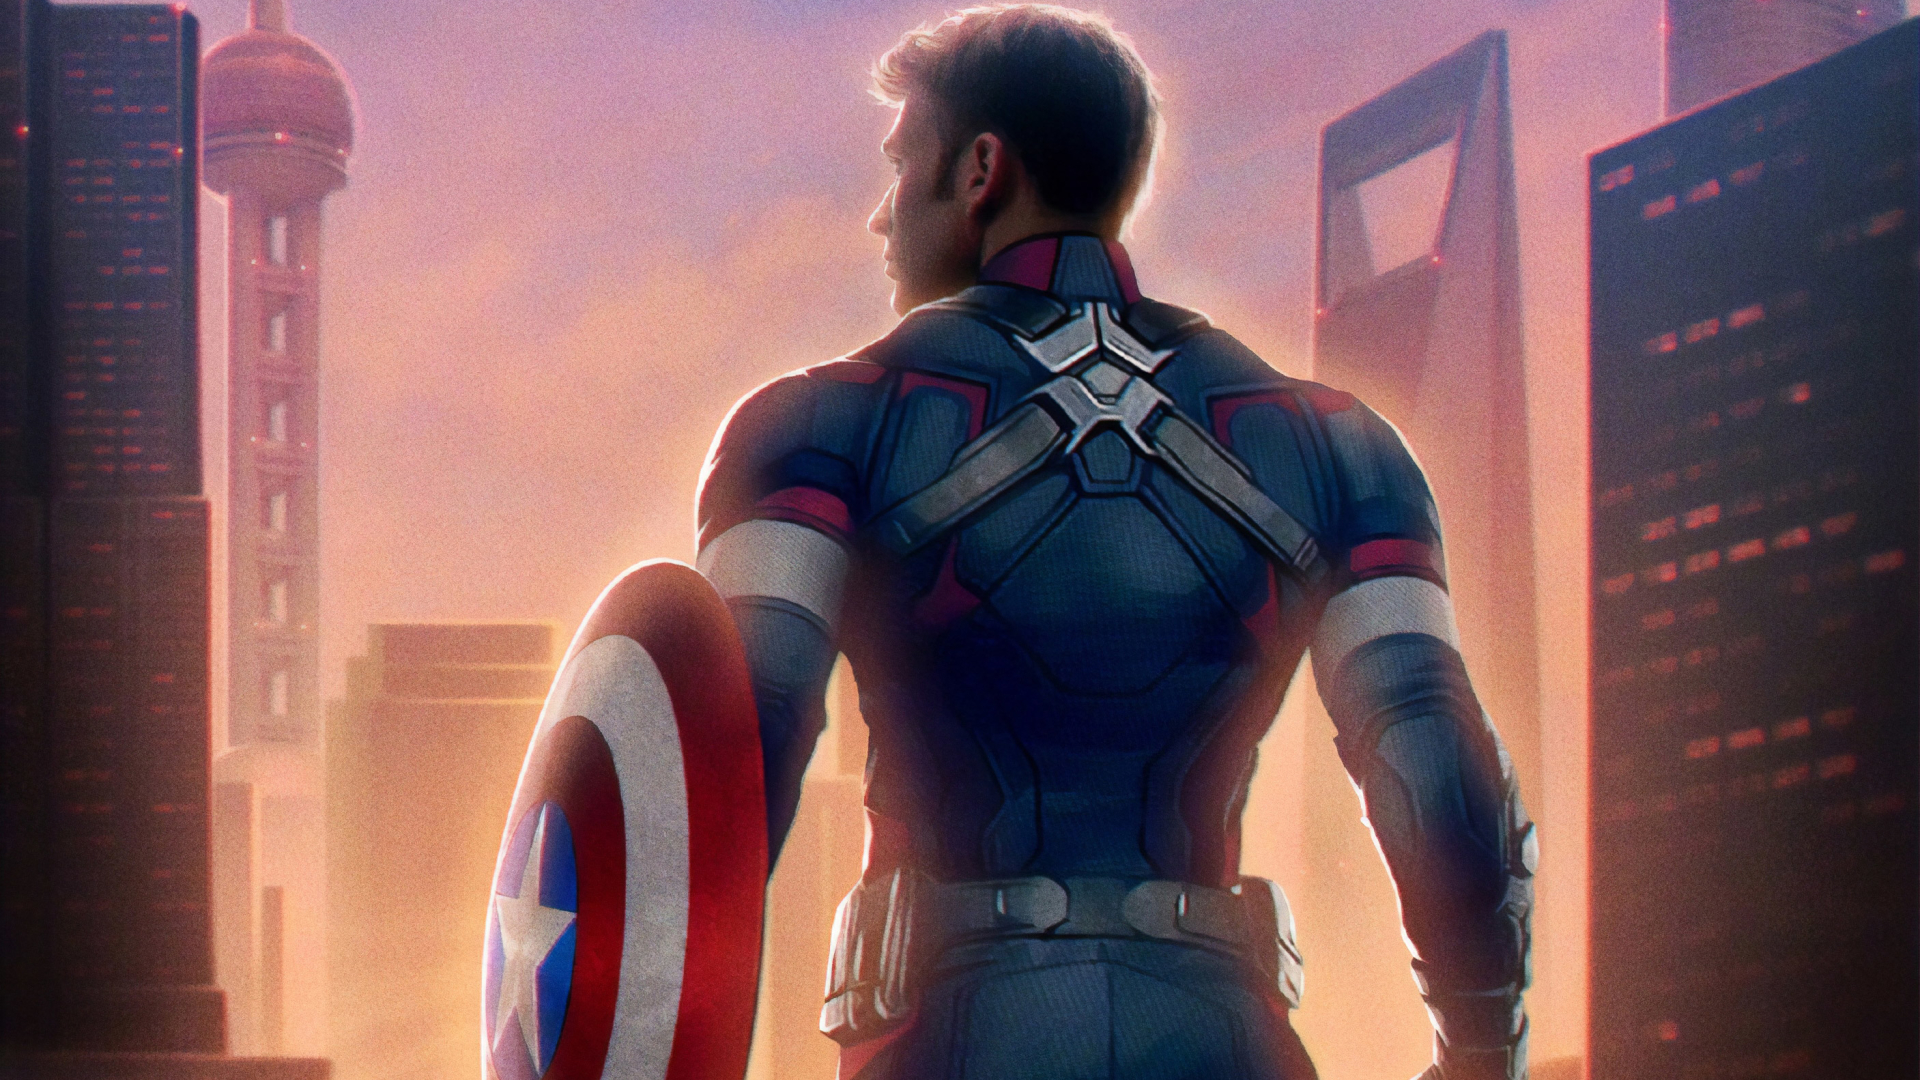 1920x1080 Captain America Avengers Endgame 1080p Laptop Full Hd Wallpaper Hd Movies 4k Wallpapers Images Photos And Background